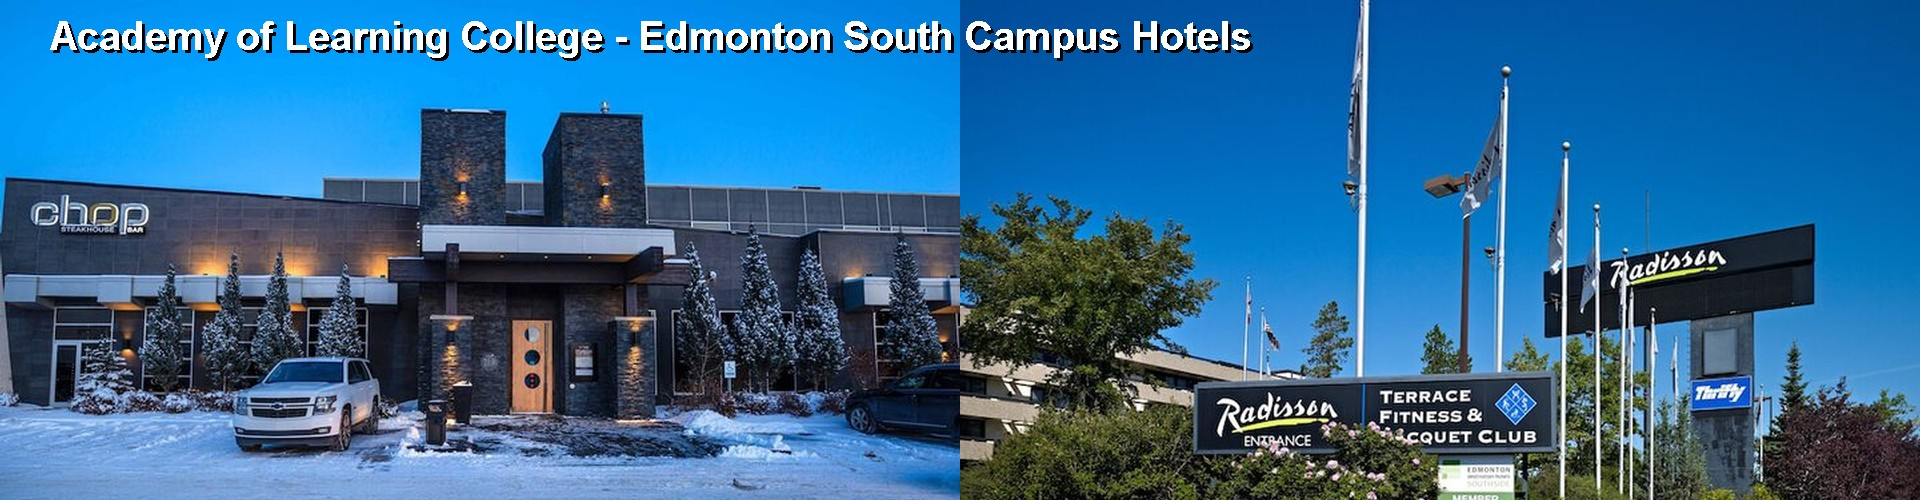 5 Best Hotels near Academy of Learning College - Edmonton South Campus